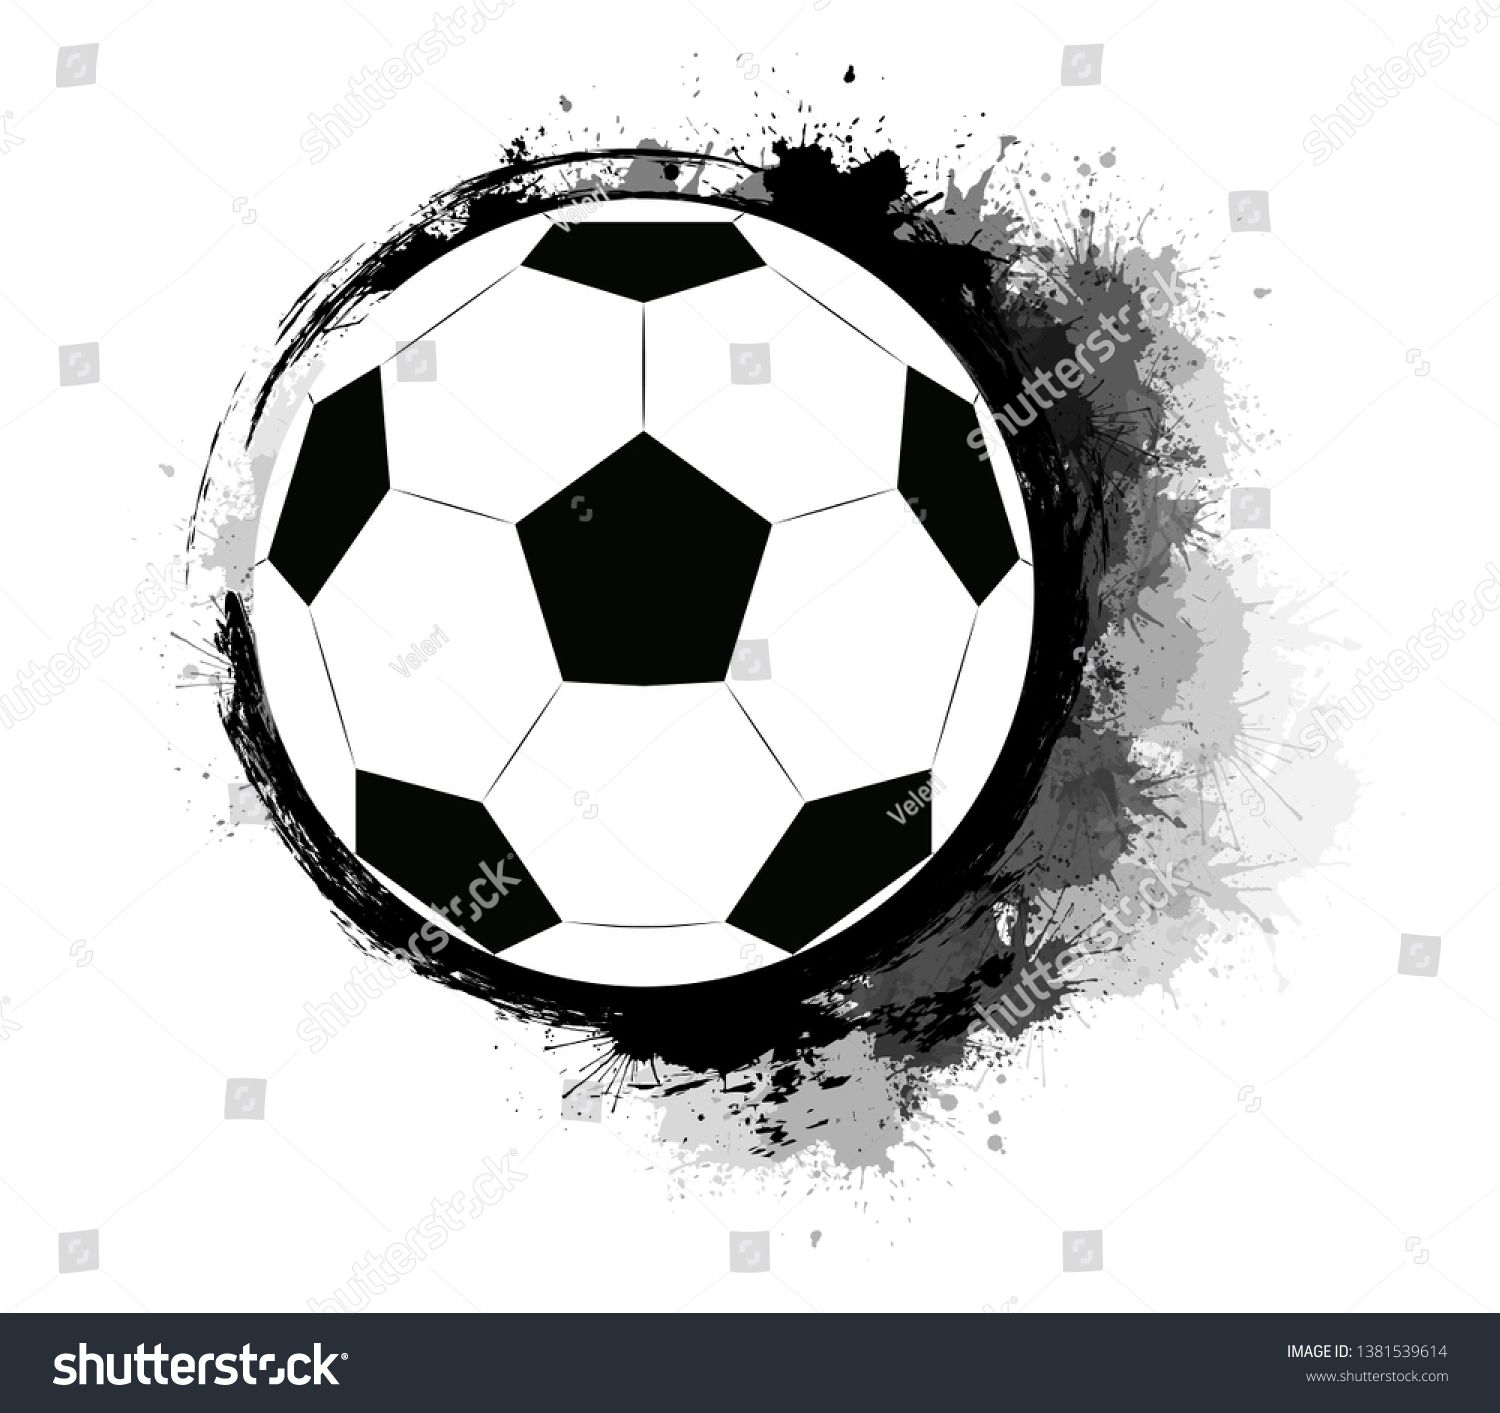 Soccer Ball With Grunge Scuffs Ink Stains And Watercolor Splashes The Object Is Separate From The Background Vector Ink Stain Soccer Ball Watercolor Splash